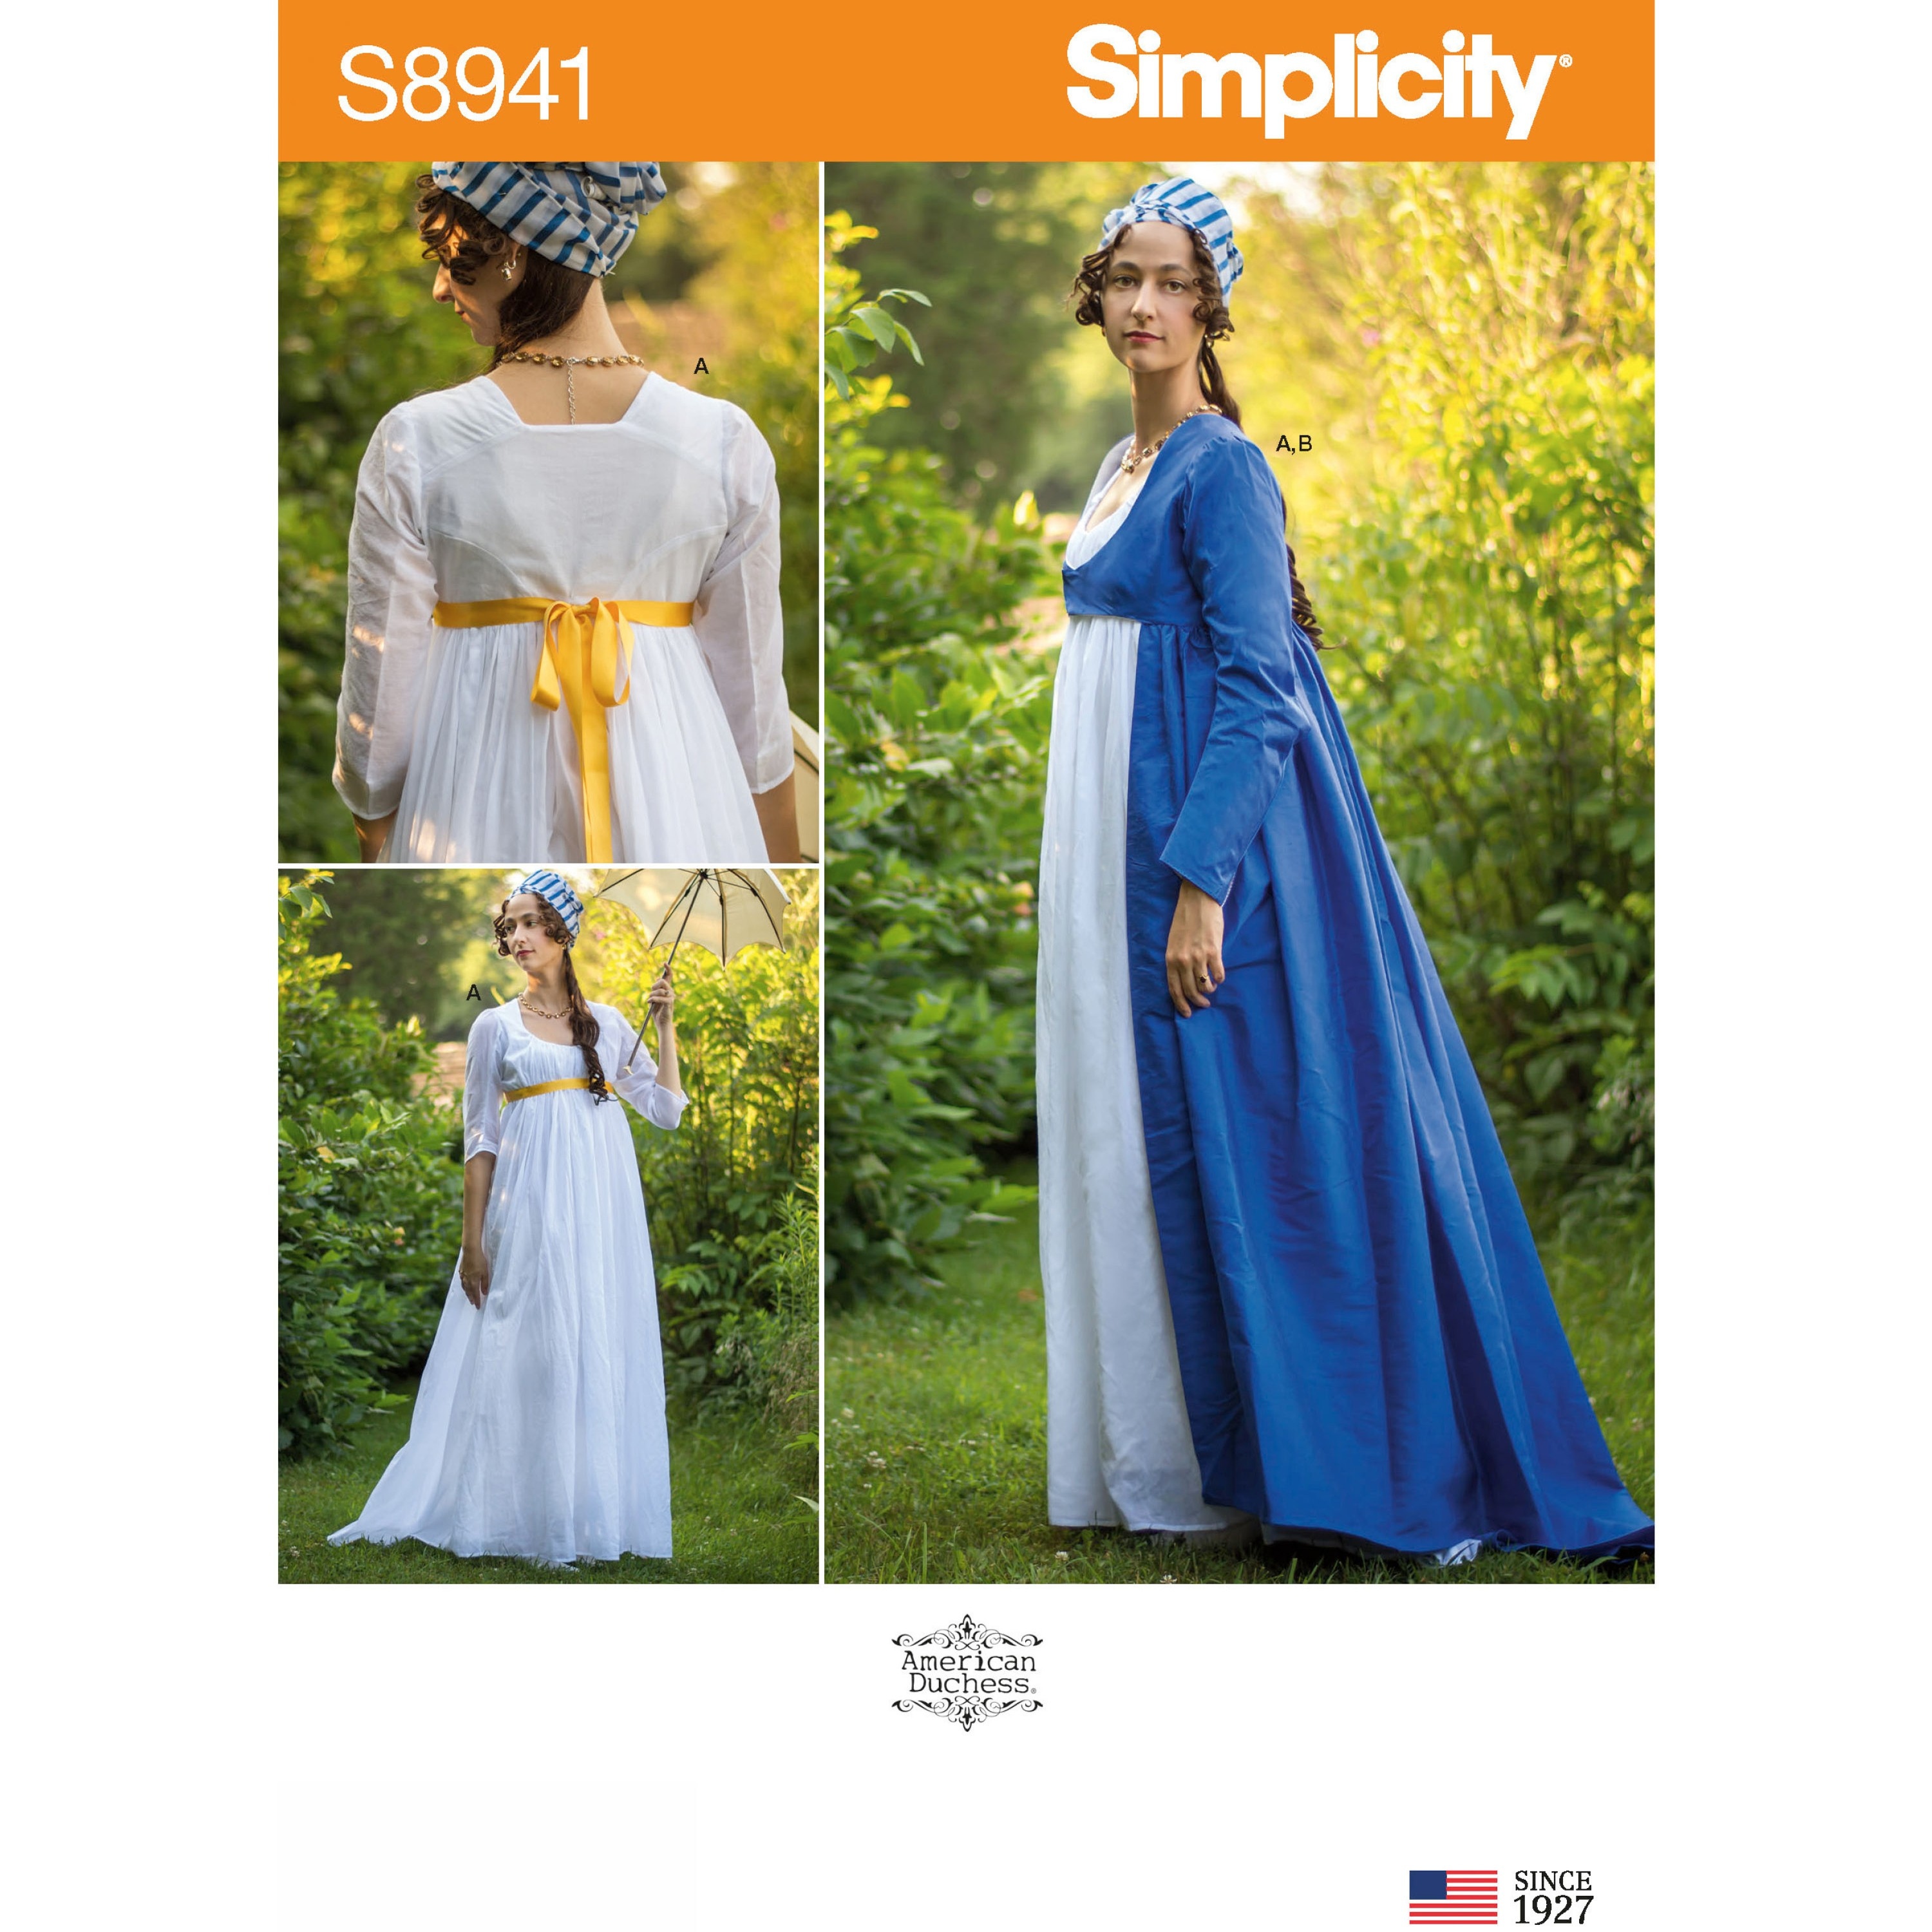 Simplicity Sewing Pattern 8941 Misses' High Waisted Costume Dress with Sleeves